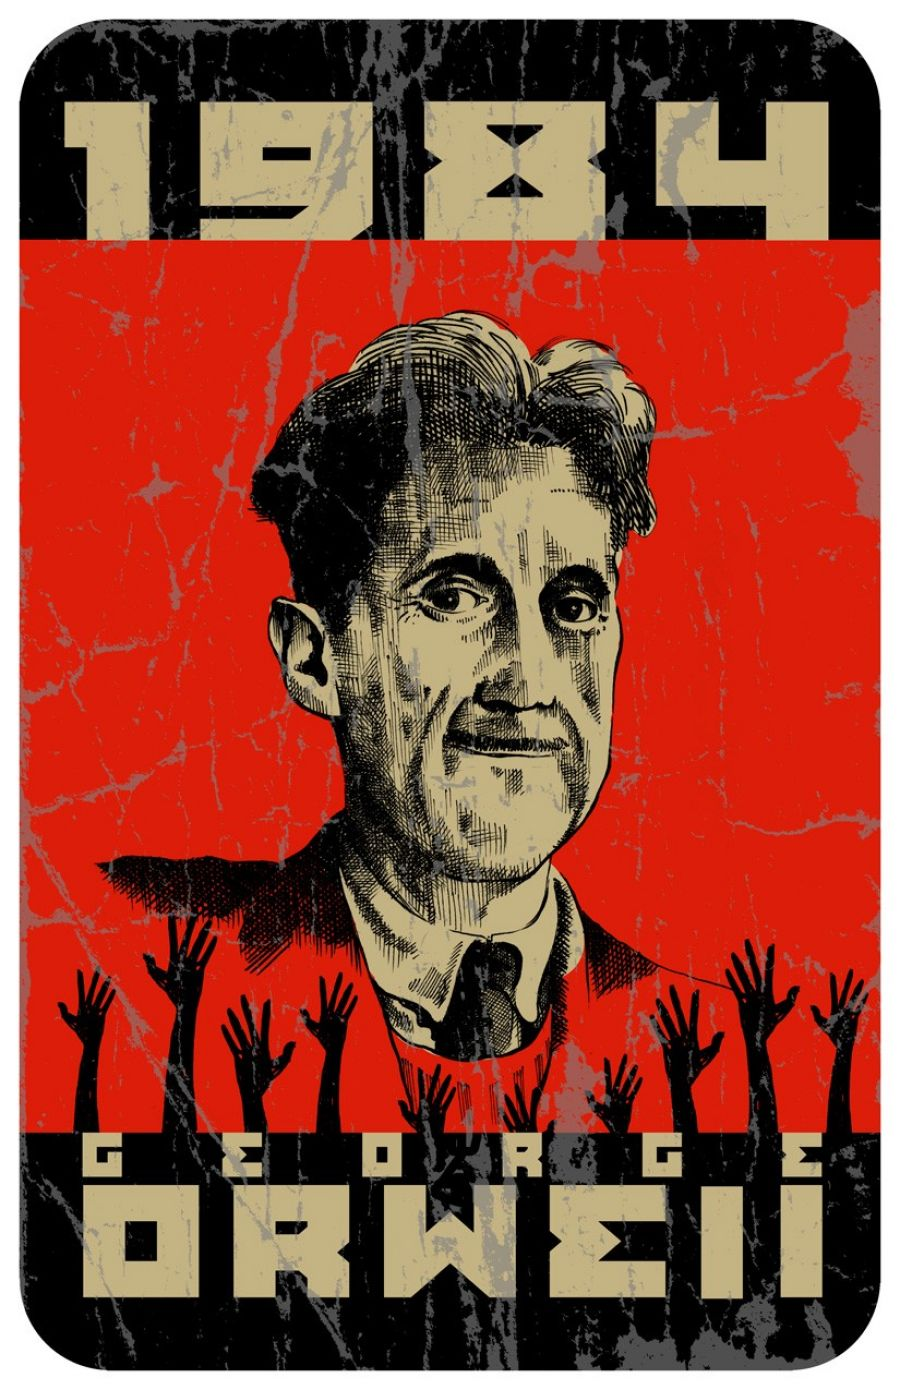 the orwell influence richard walker online the orwell influence